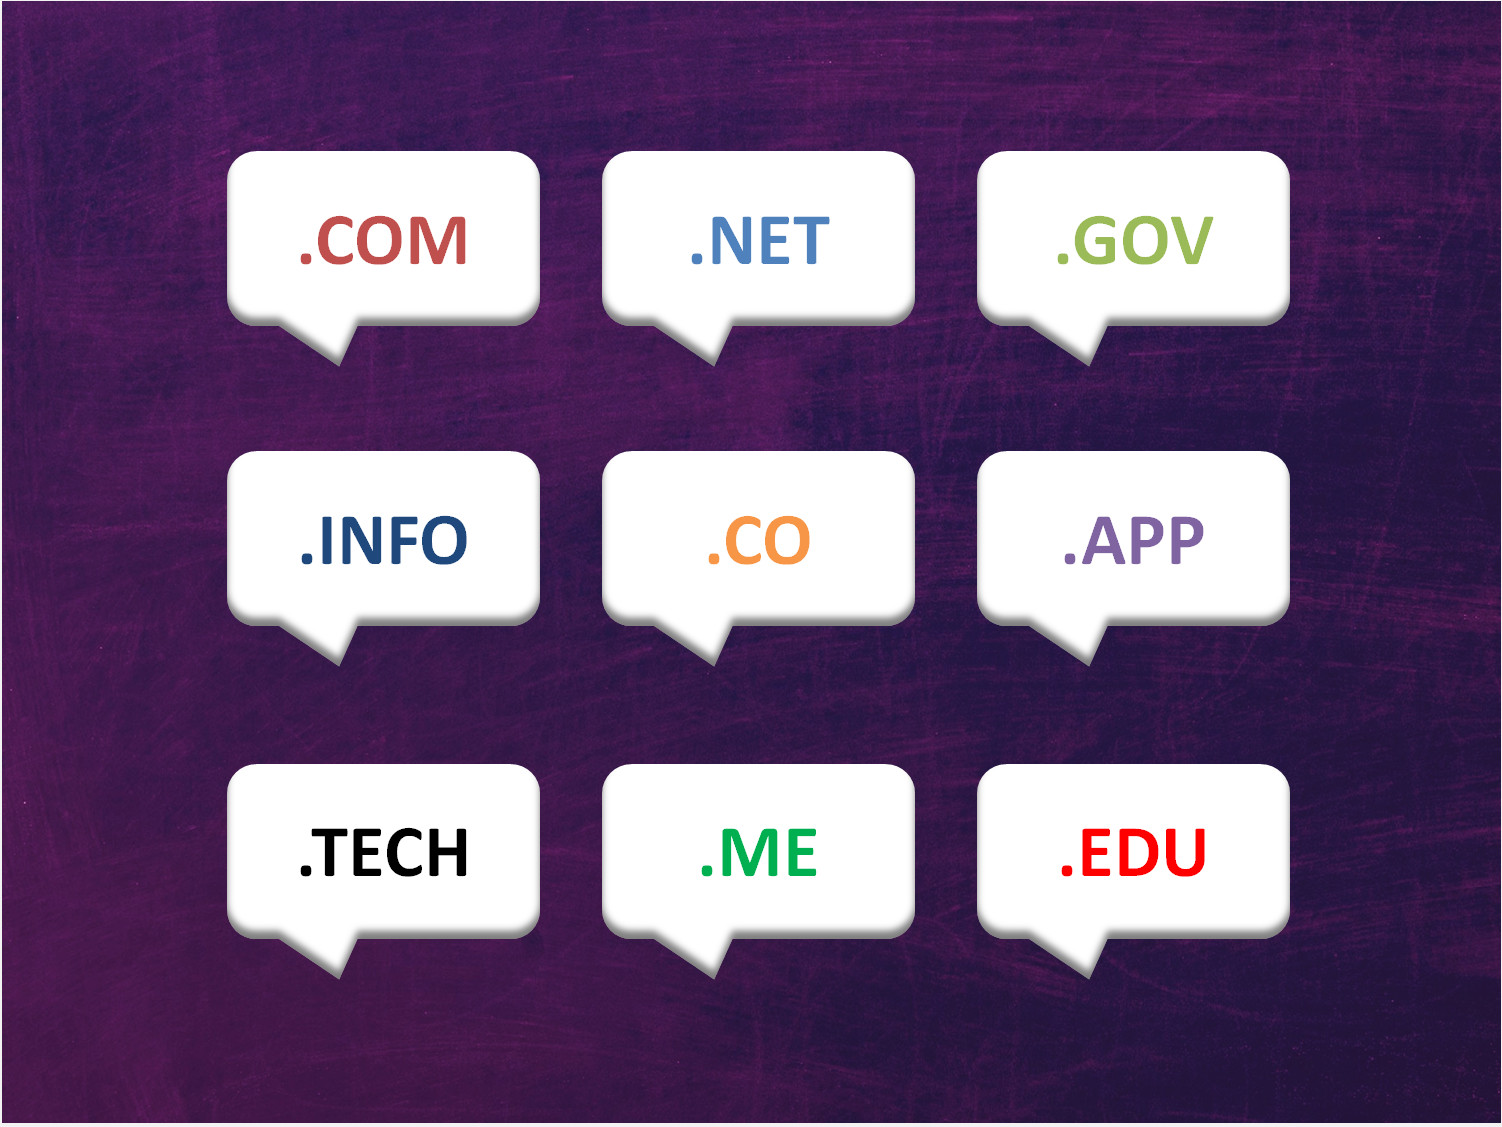 5 Uncommon Top Level Domain names and why you should consider them - Image 1